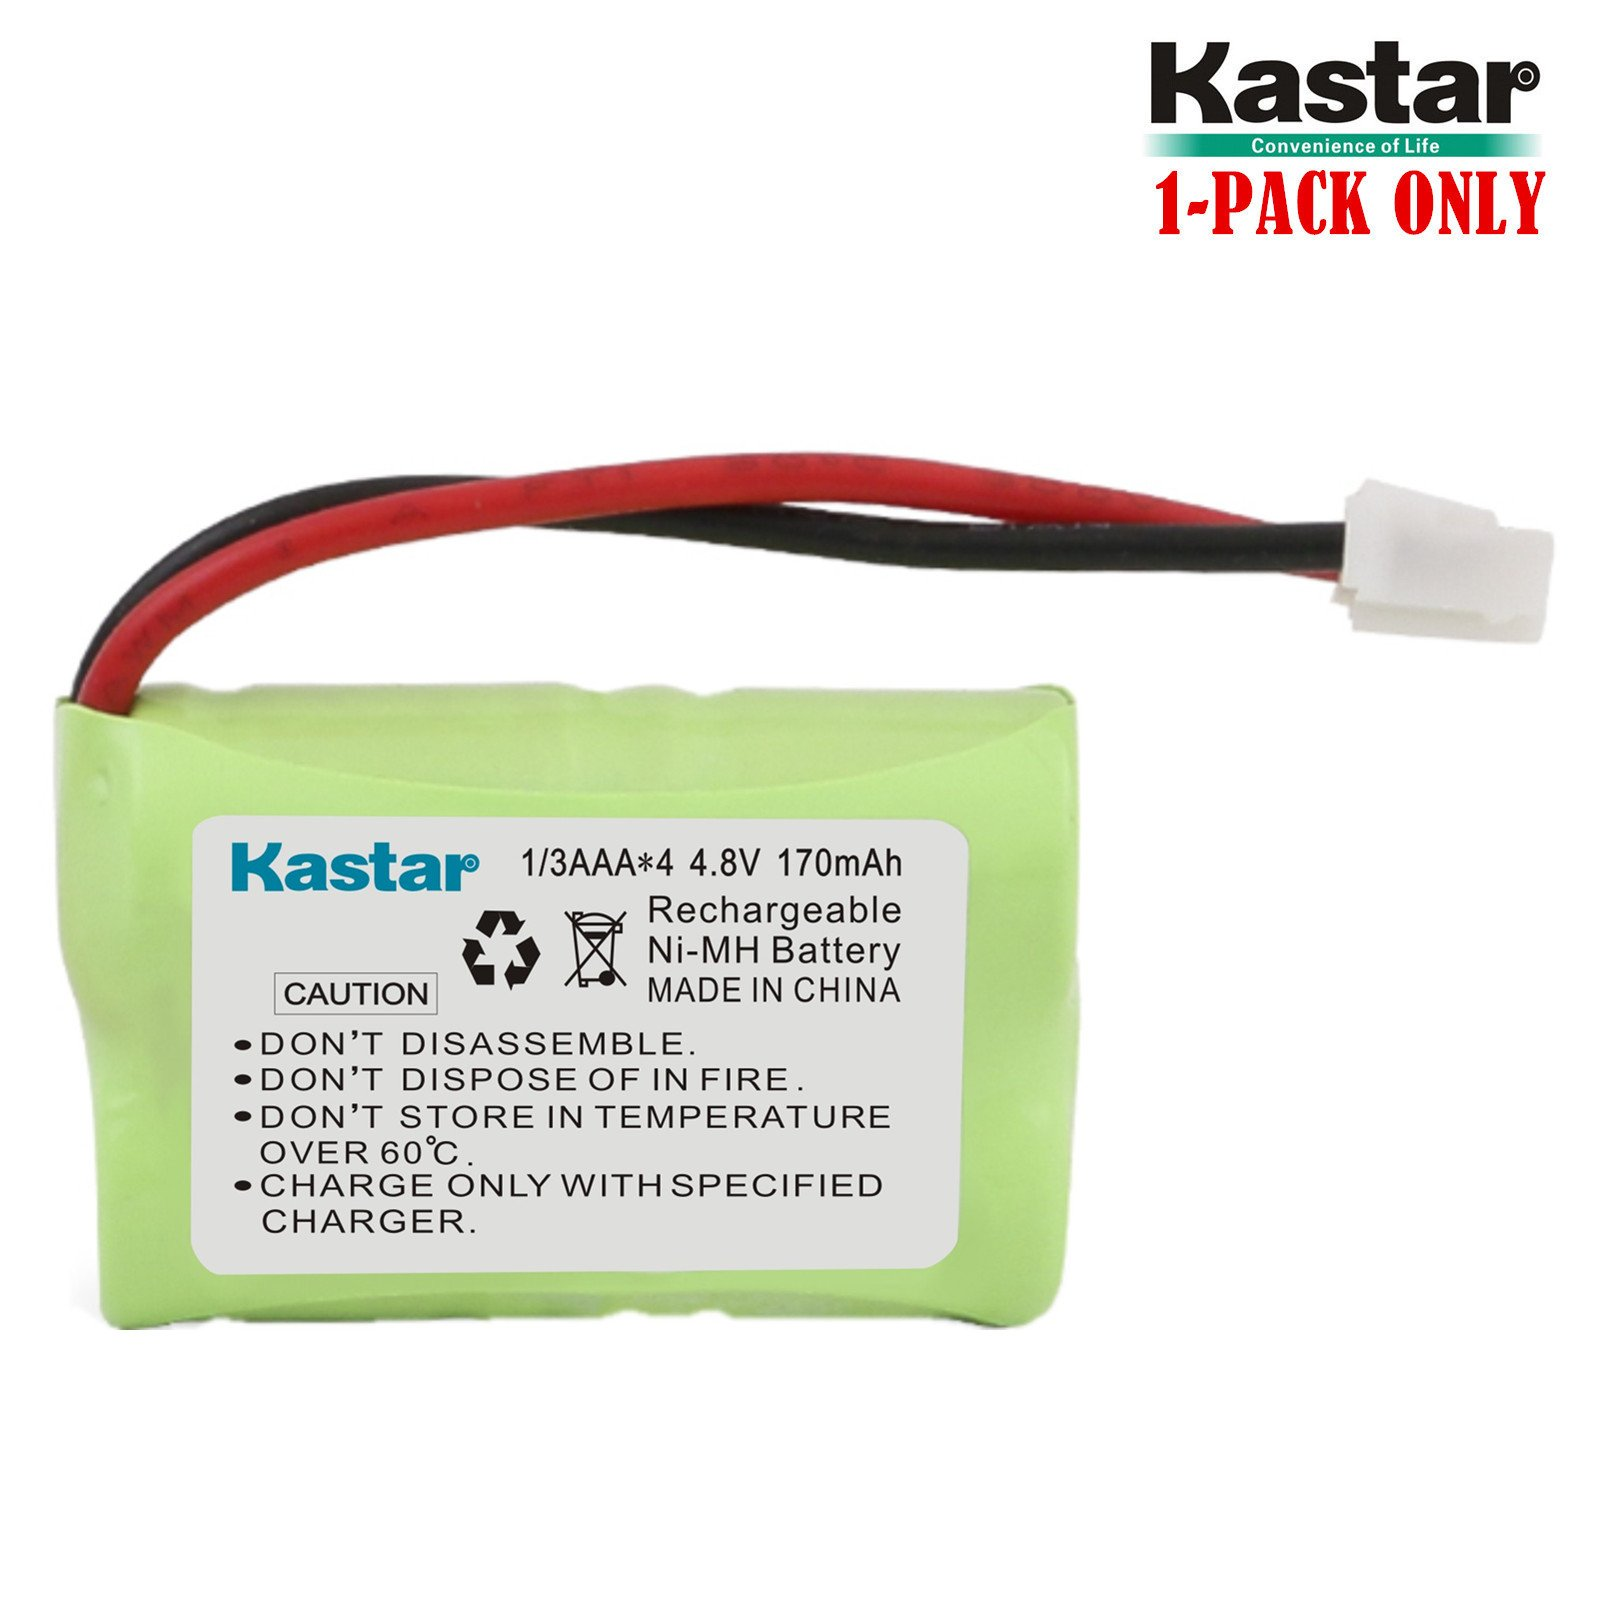 Kastar 170mAh Ni-MH Rechargeable Battery for SportDog FR200, SD-400, SD-800, SAC00-15724, PetSafe Yard and Park Remote Dog Trainer, PDT00-12470 RFA-417 PAC00-12159 FR-200P Collar Receiver plus Coaster